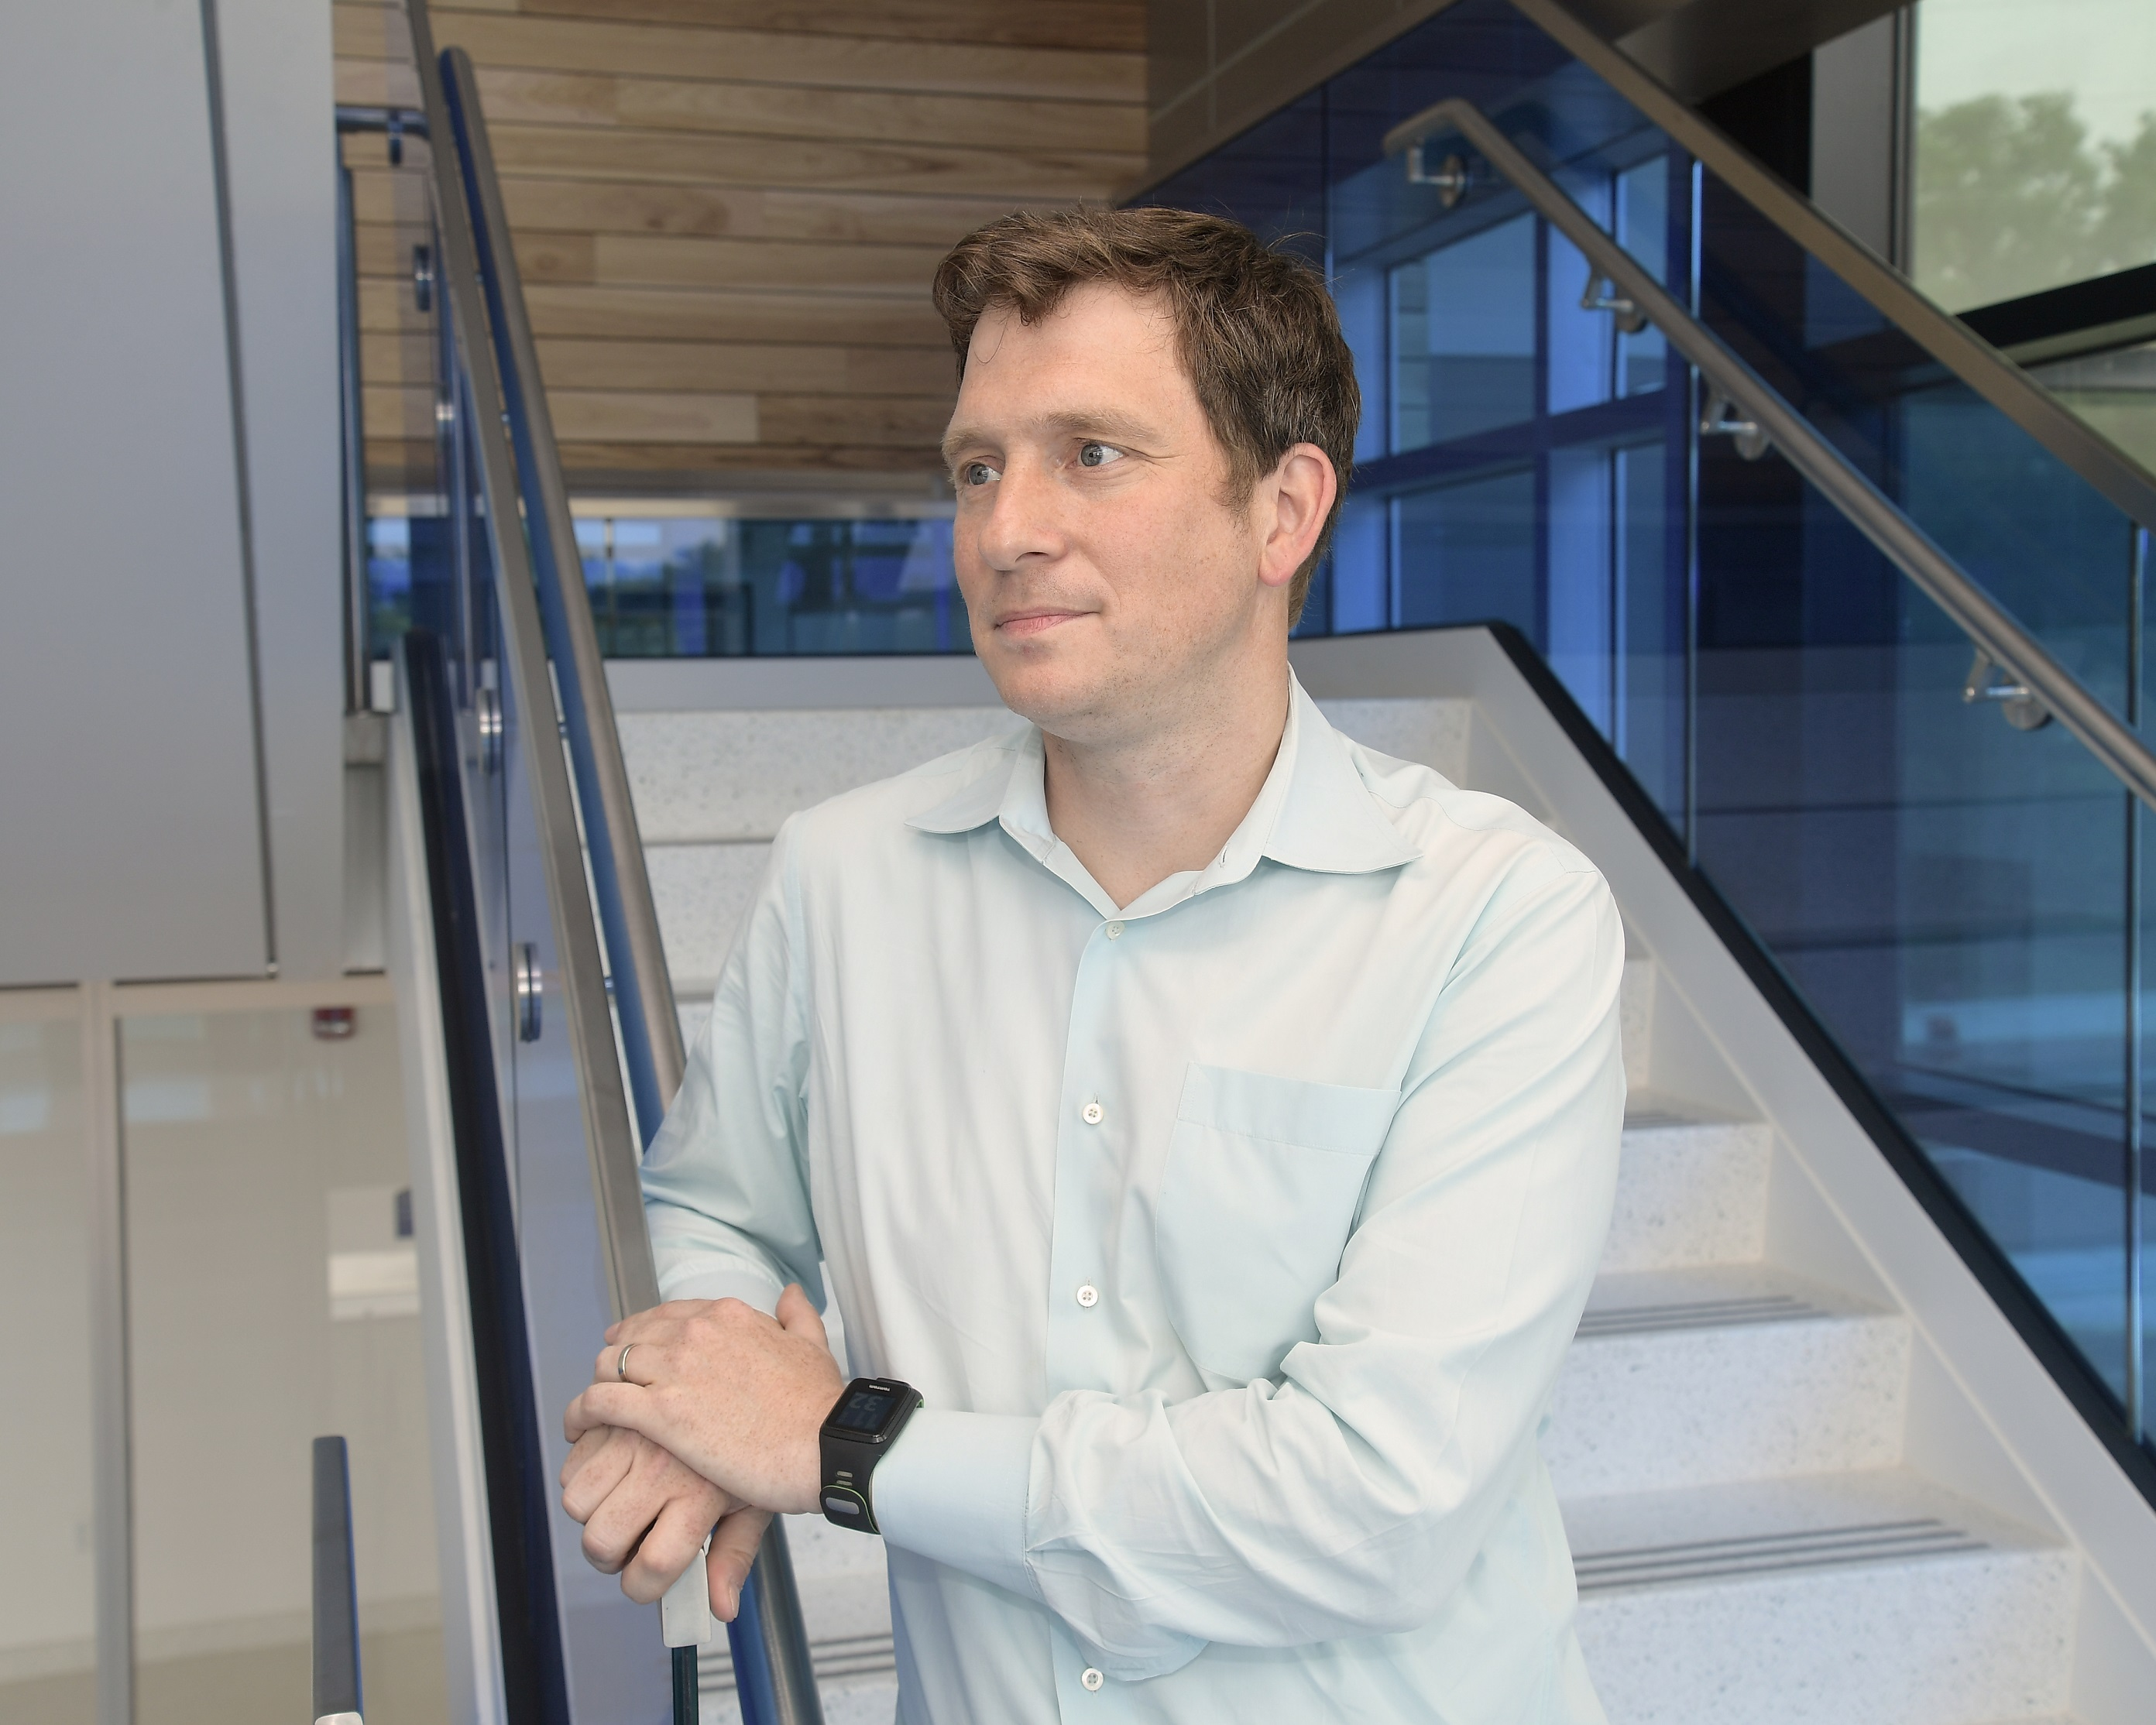 Björn Lüssem, Ph.D., assistant professor of physics at Kent State University, recently received a five-year, $500,000 Faculty Early Career Development (CAREER) Award from the National Science Foundation.